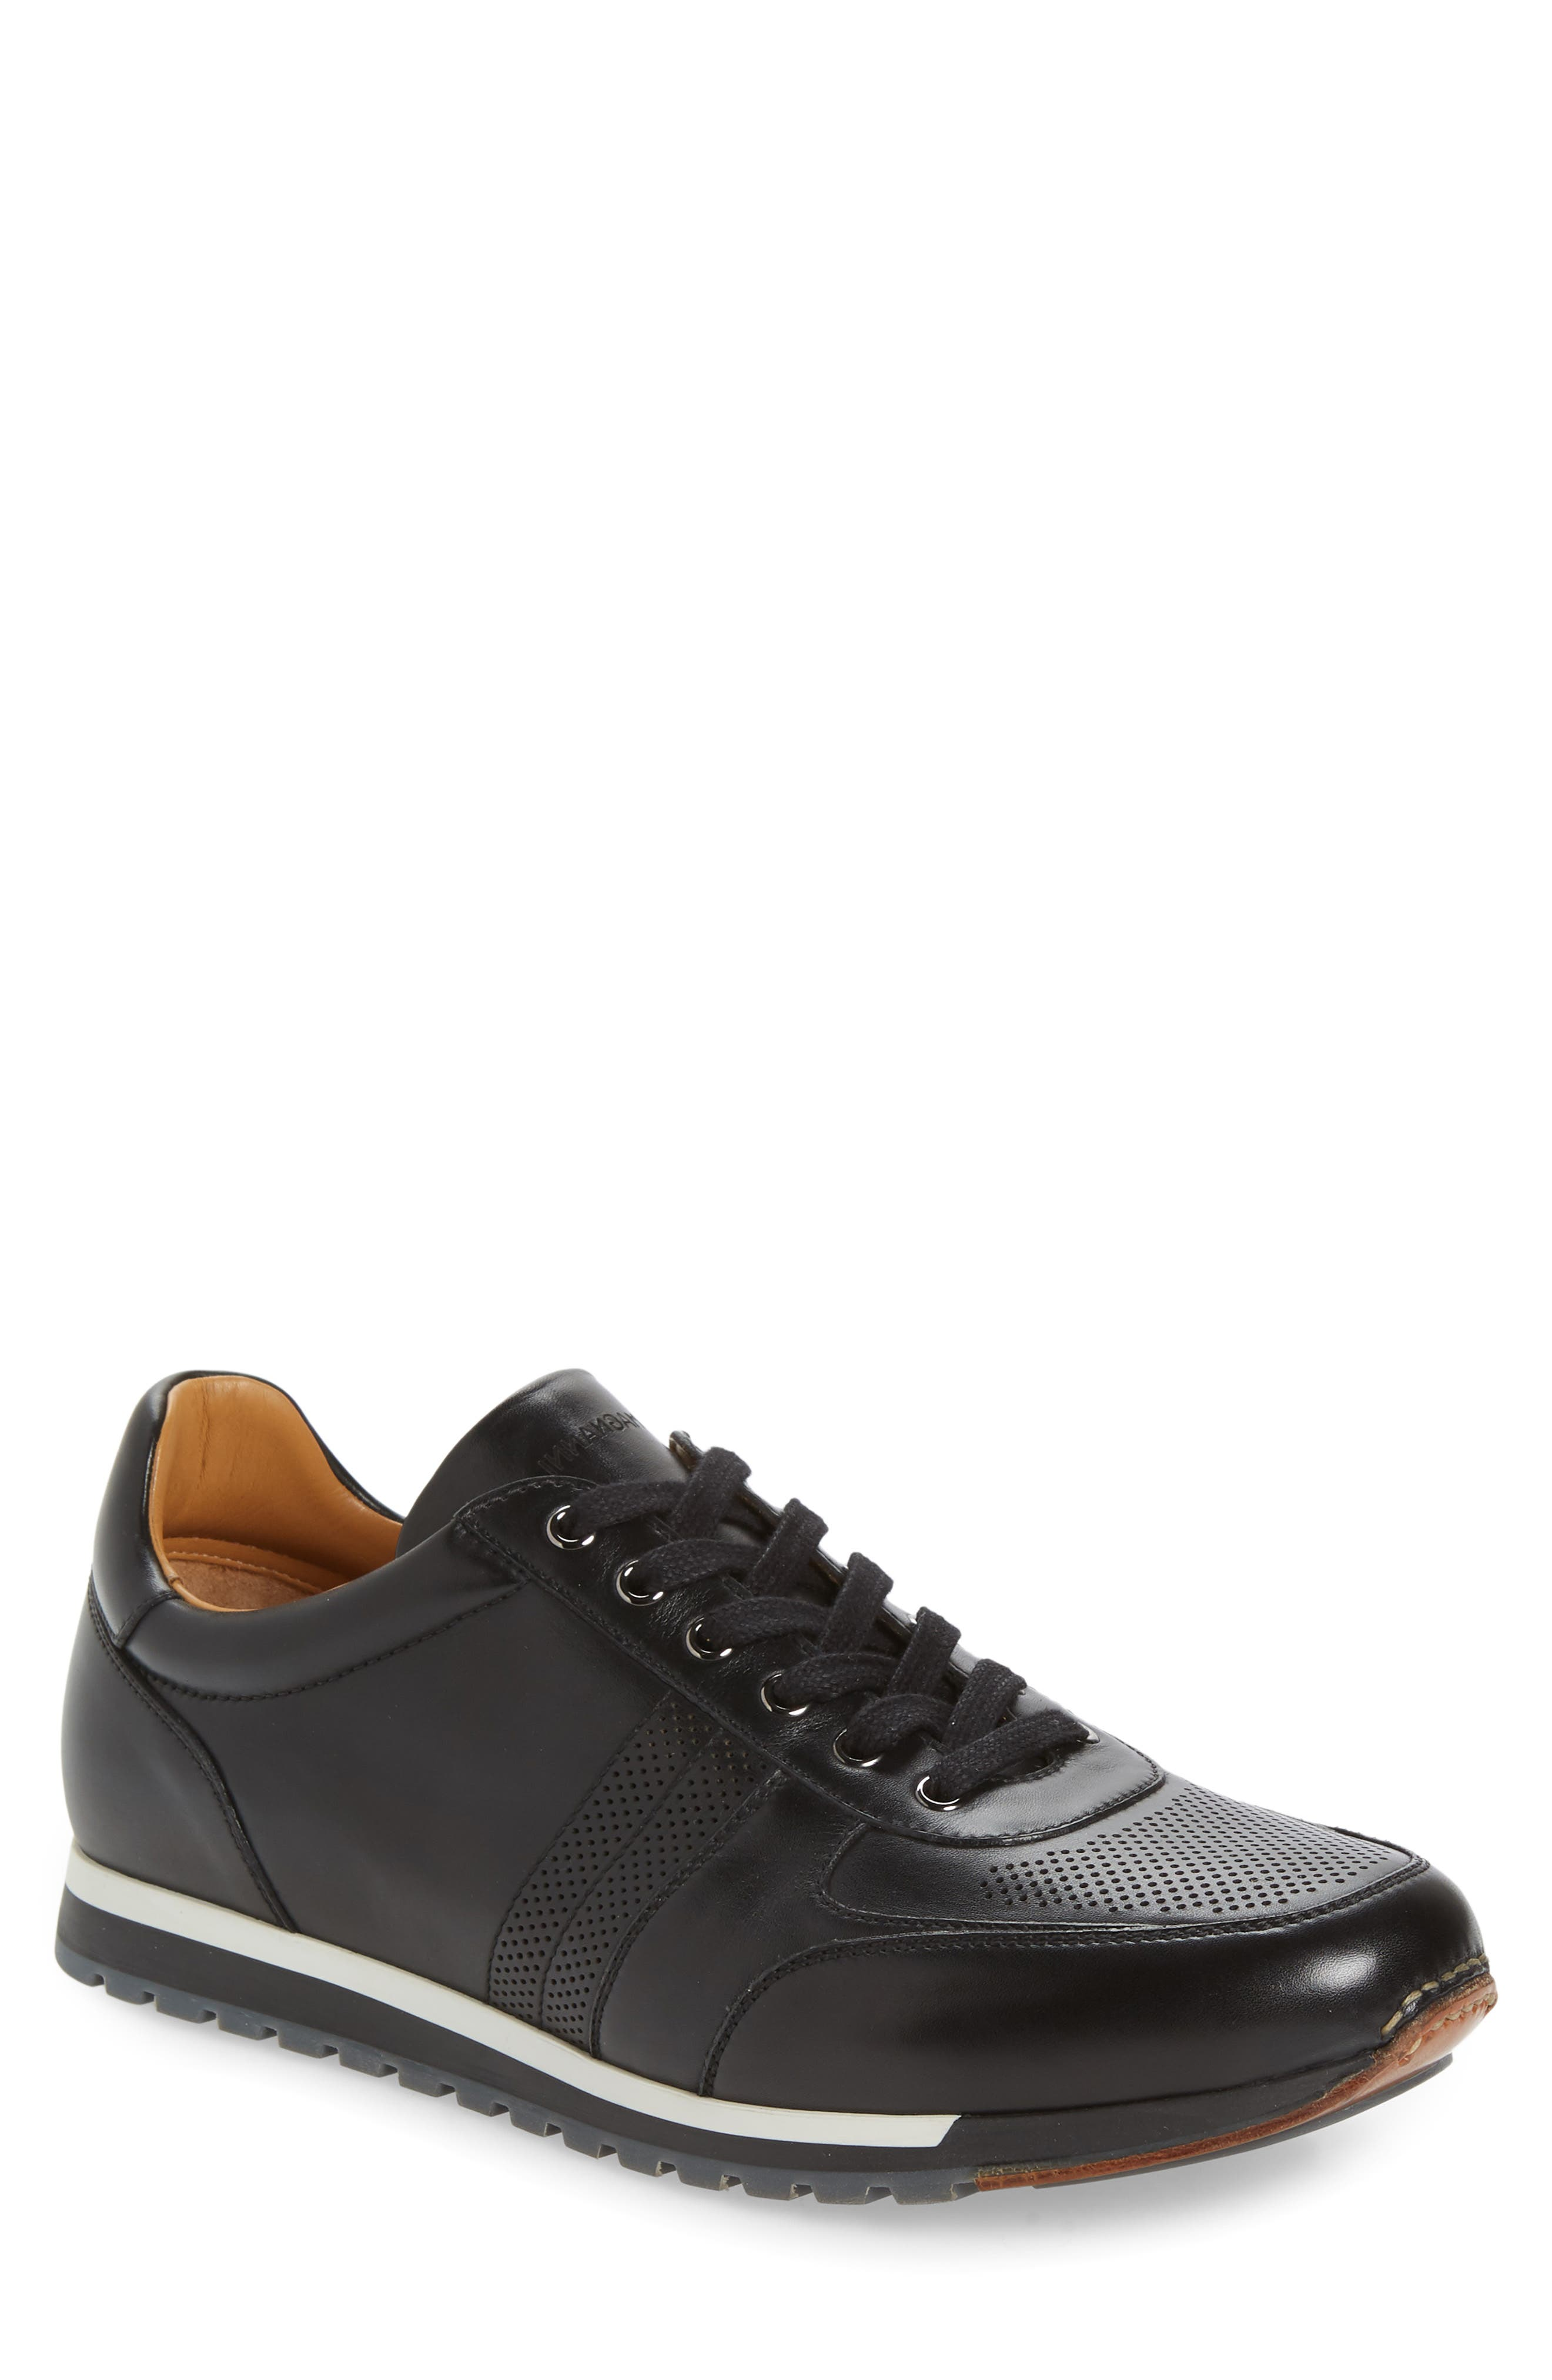 Neat dot perforations punctuate the toe and the angled racing stripes of a jet-black leather sneaker that sports a pop of white sandwiched into the sole. Style Name: Magnanni Lizandro Low Top Sneaker (Men). Style Number: 6019023. Available in stores.